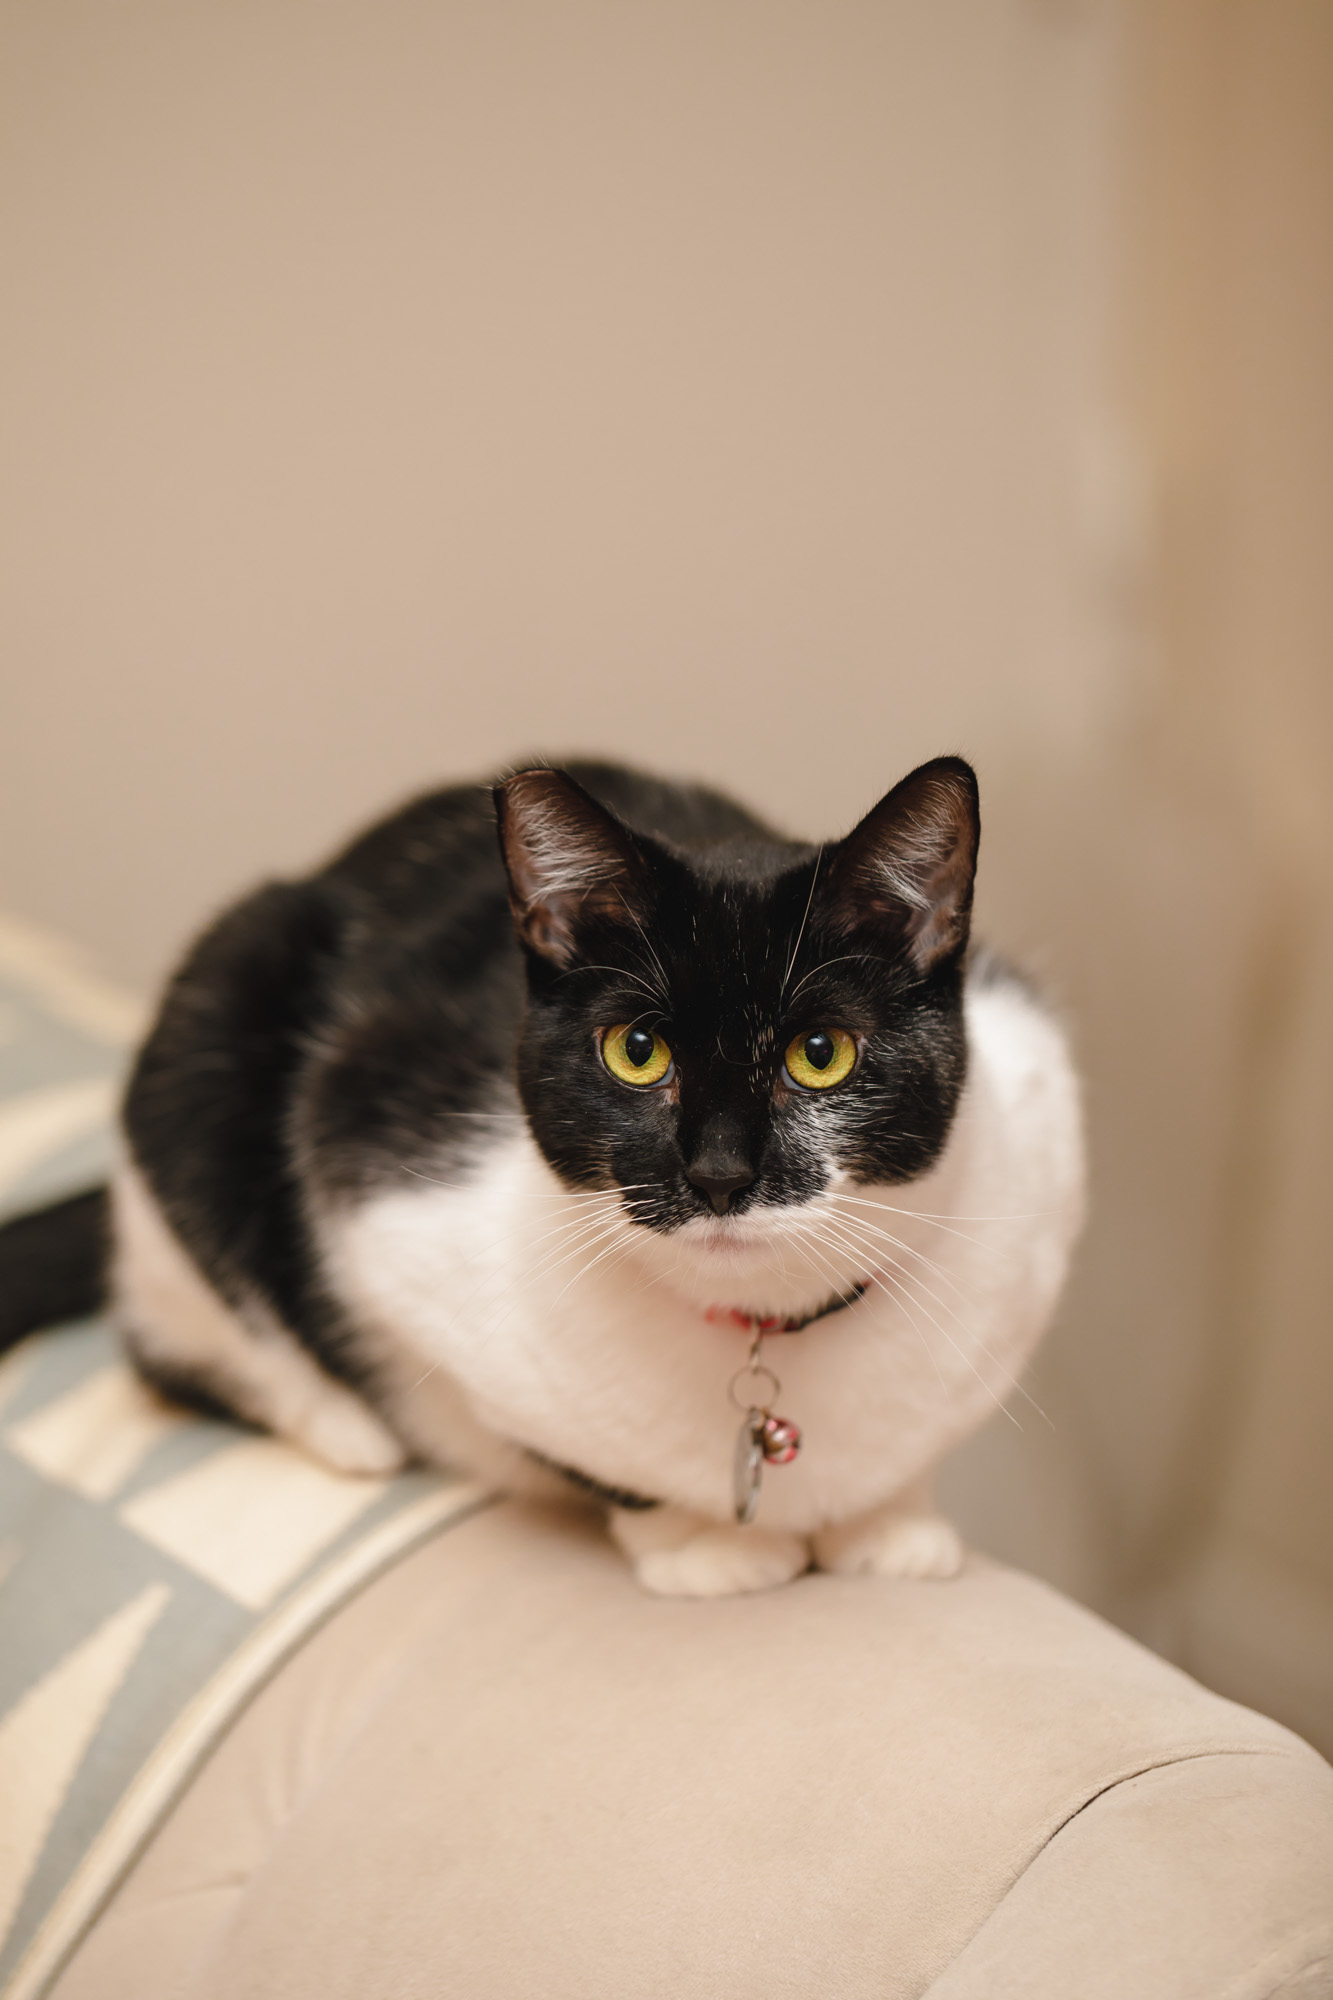 Oreo - Mother, maybe 2 years old, spayed, cleaned. She's extremely friendly and easy to play with. Loves getting pet around the lower back and will purr as soon as she lays next to you